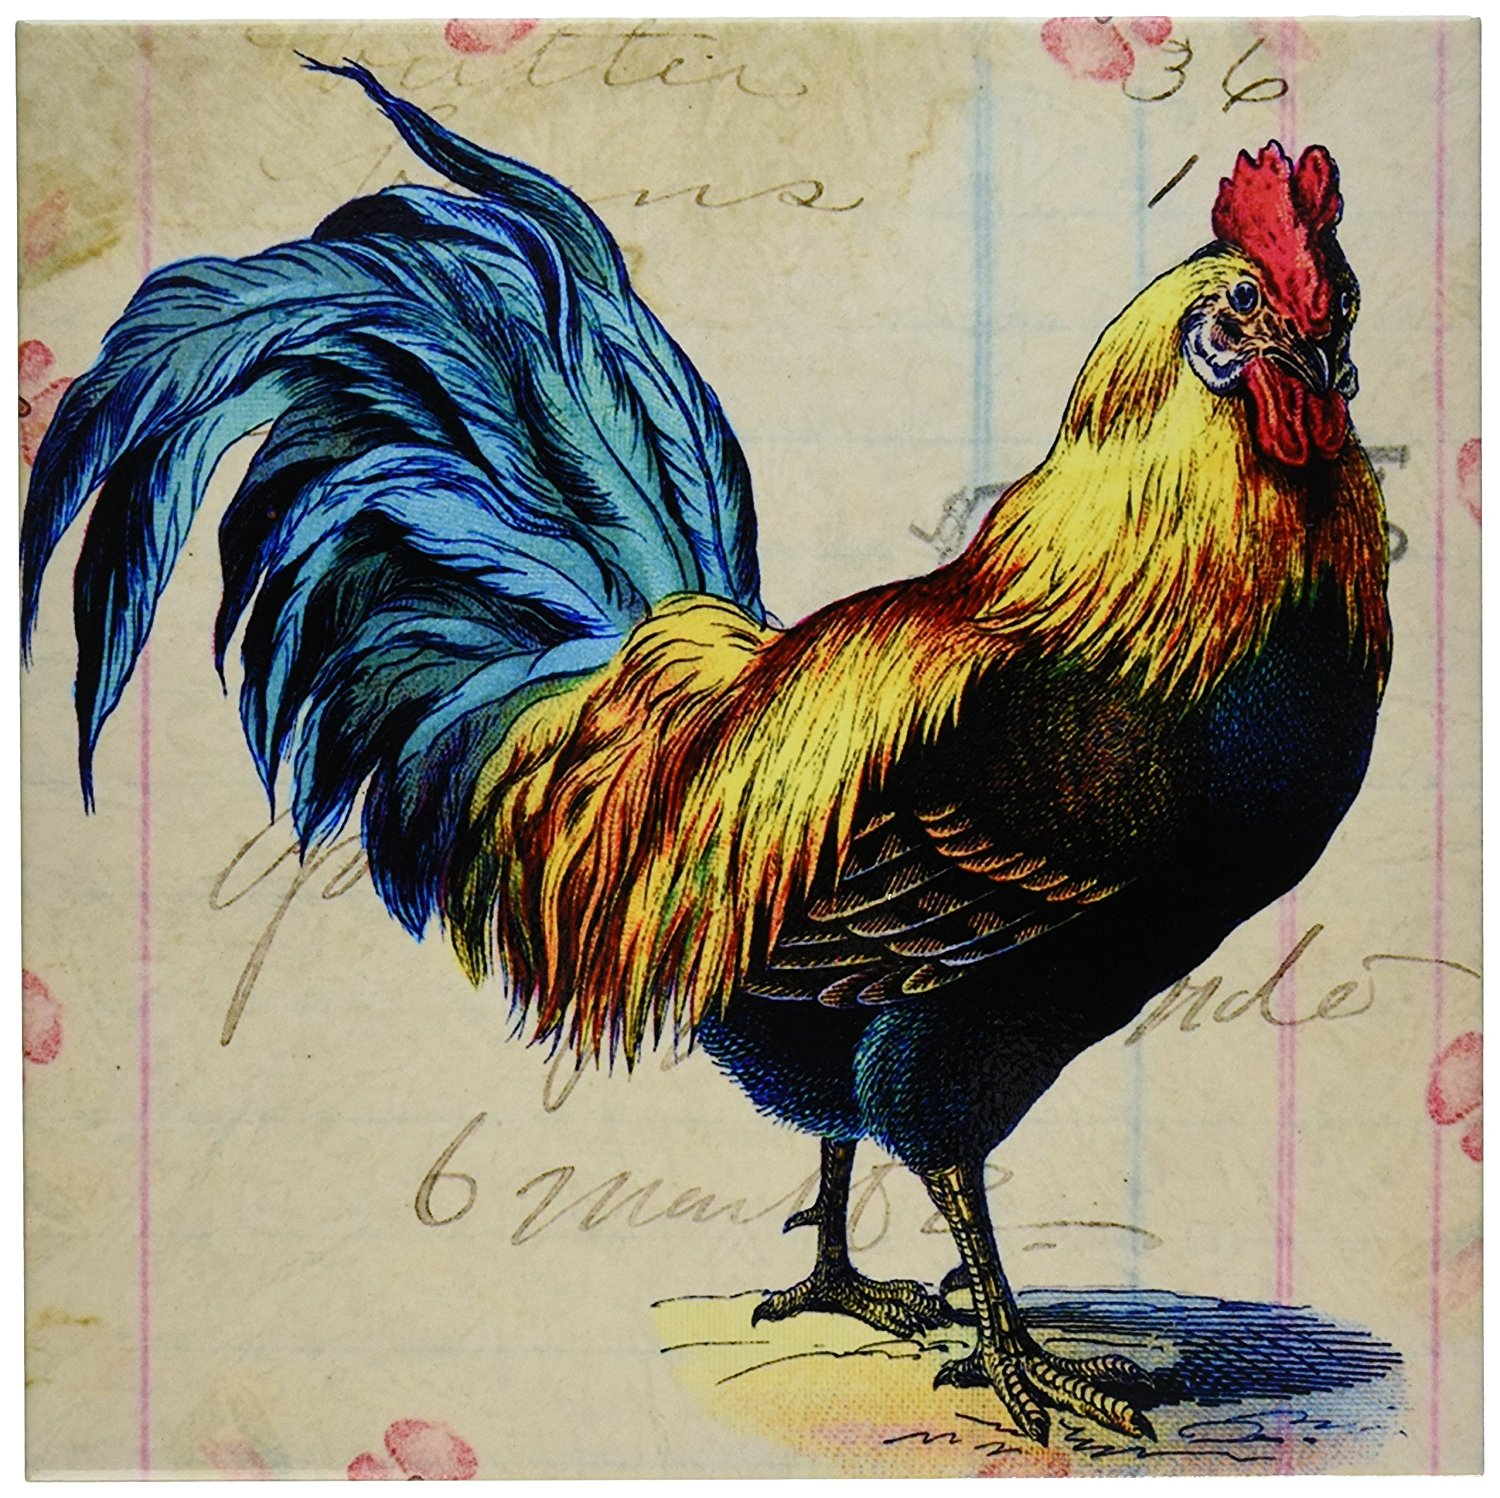 3dRose ct_108229_4 Vintage Rooster Digital Art by Angelandspot-Ceramic Tile, 12-Inch